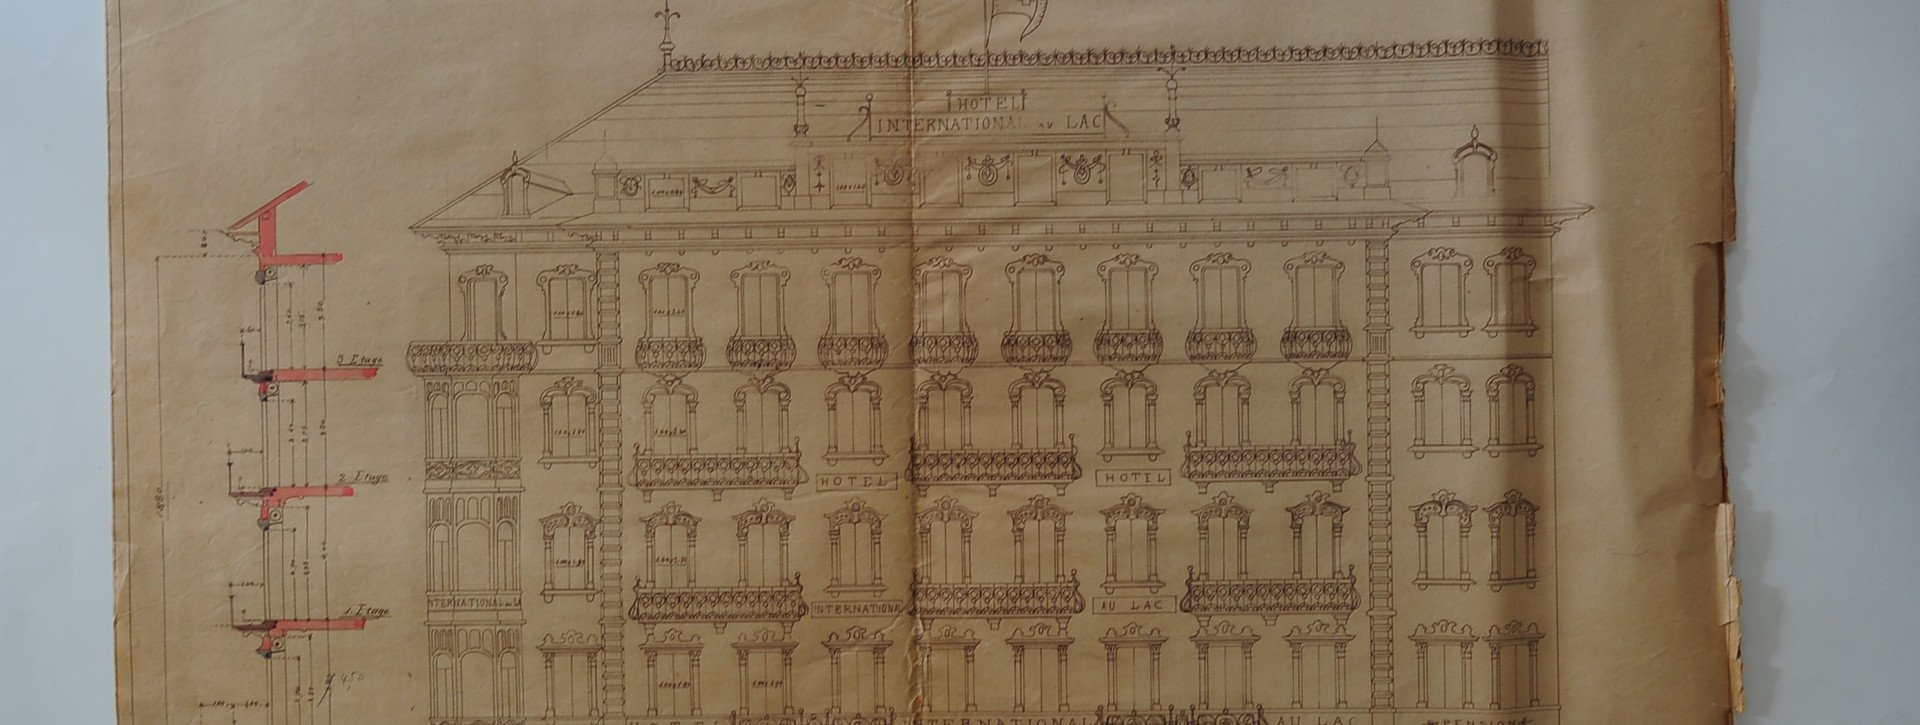 Historic building drawing of the International au Lac Historic Lakeside Hotel